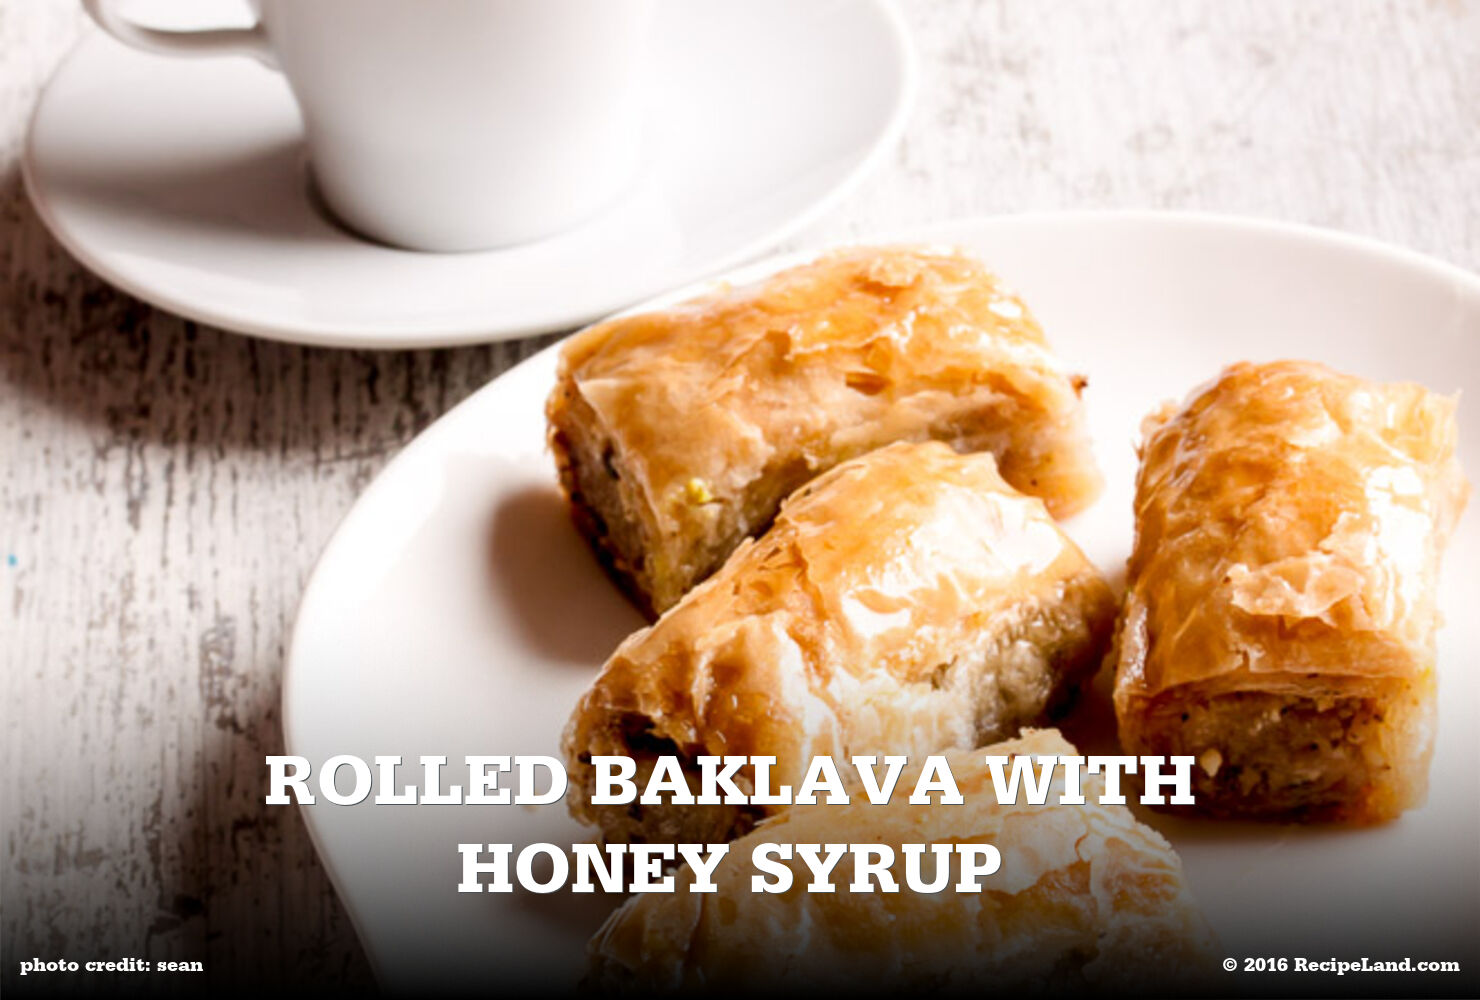 Rolled Baklava with Honey Syrup